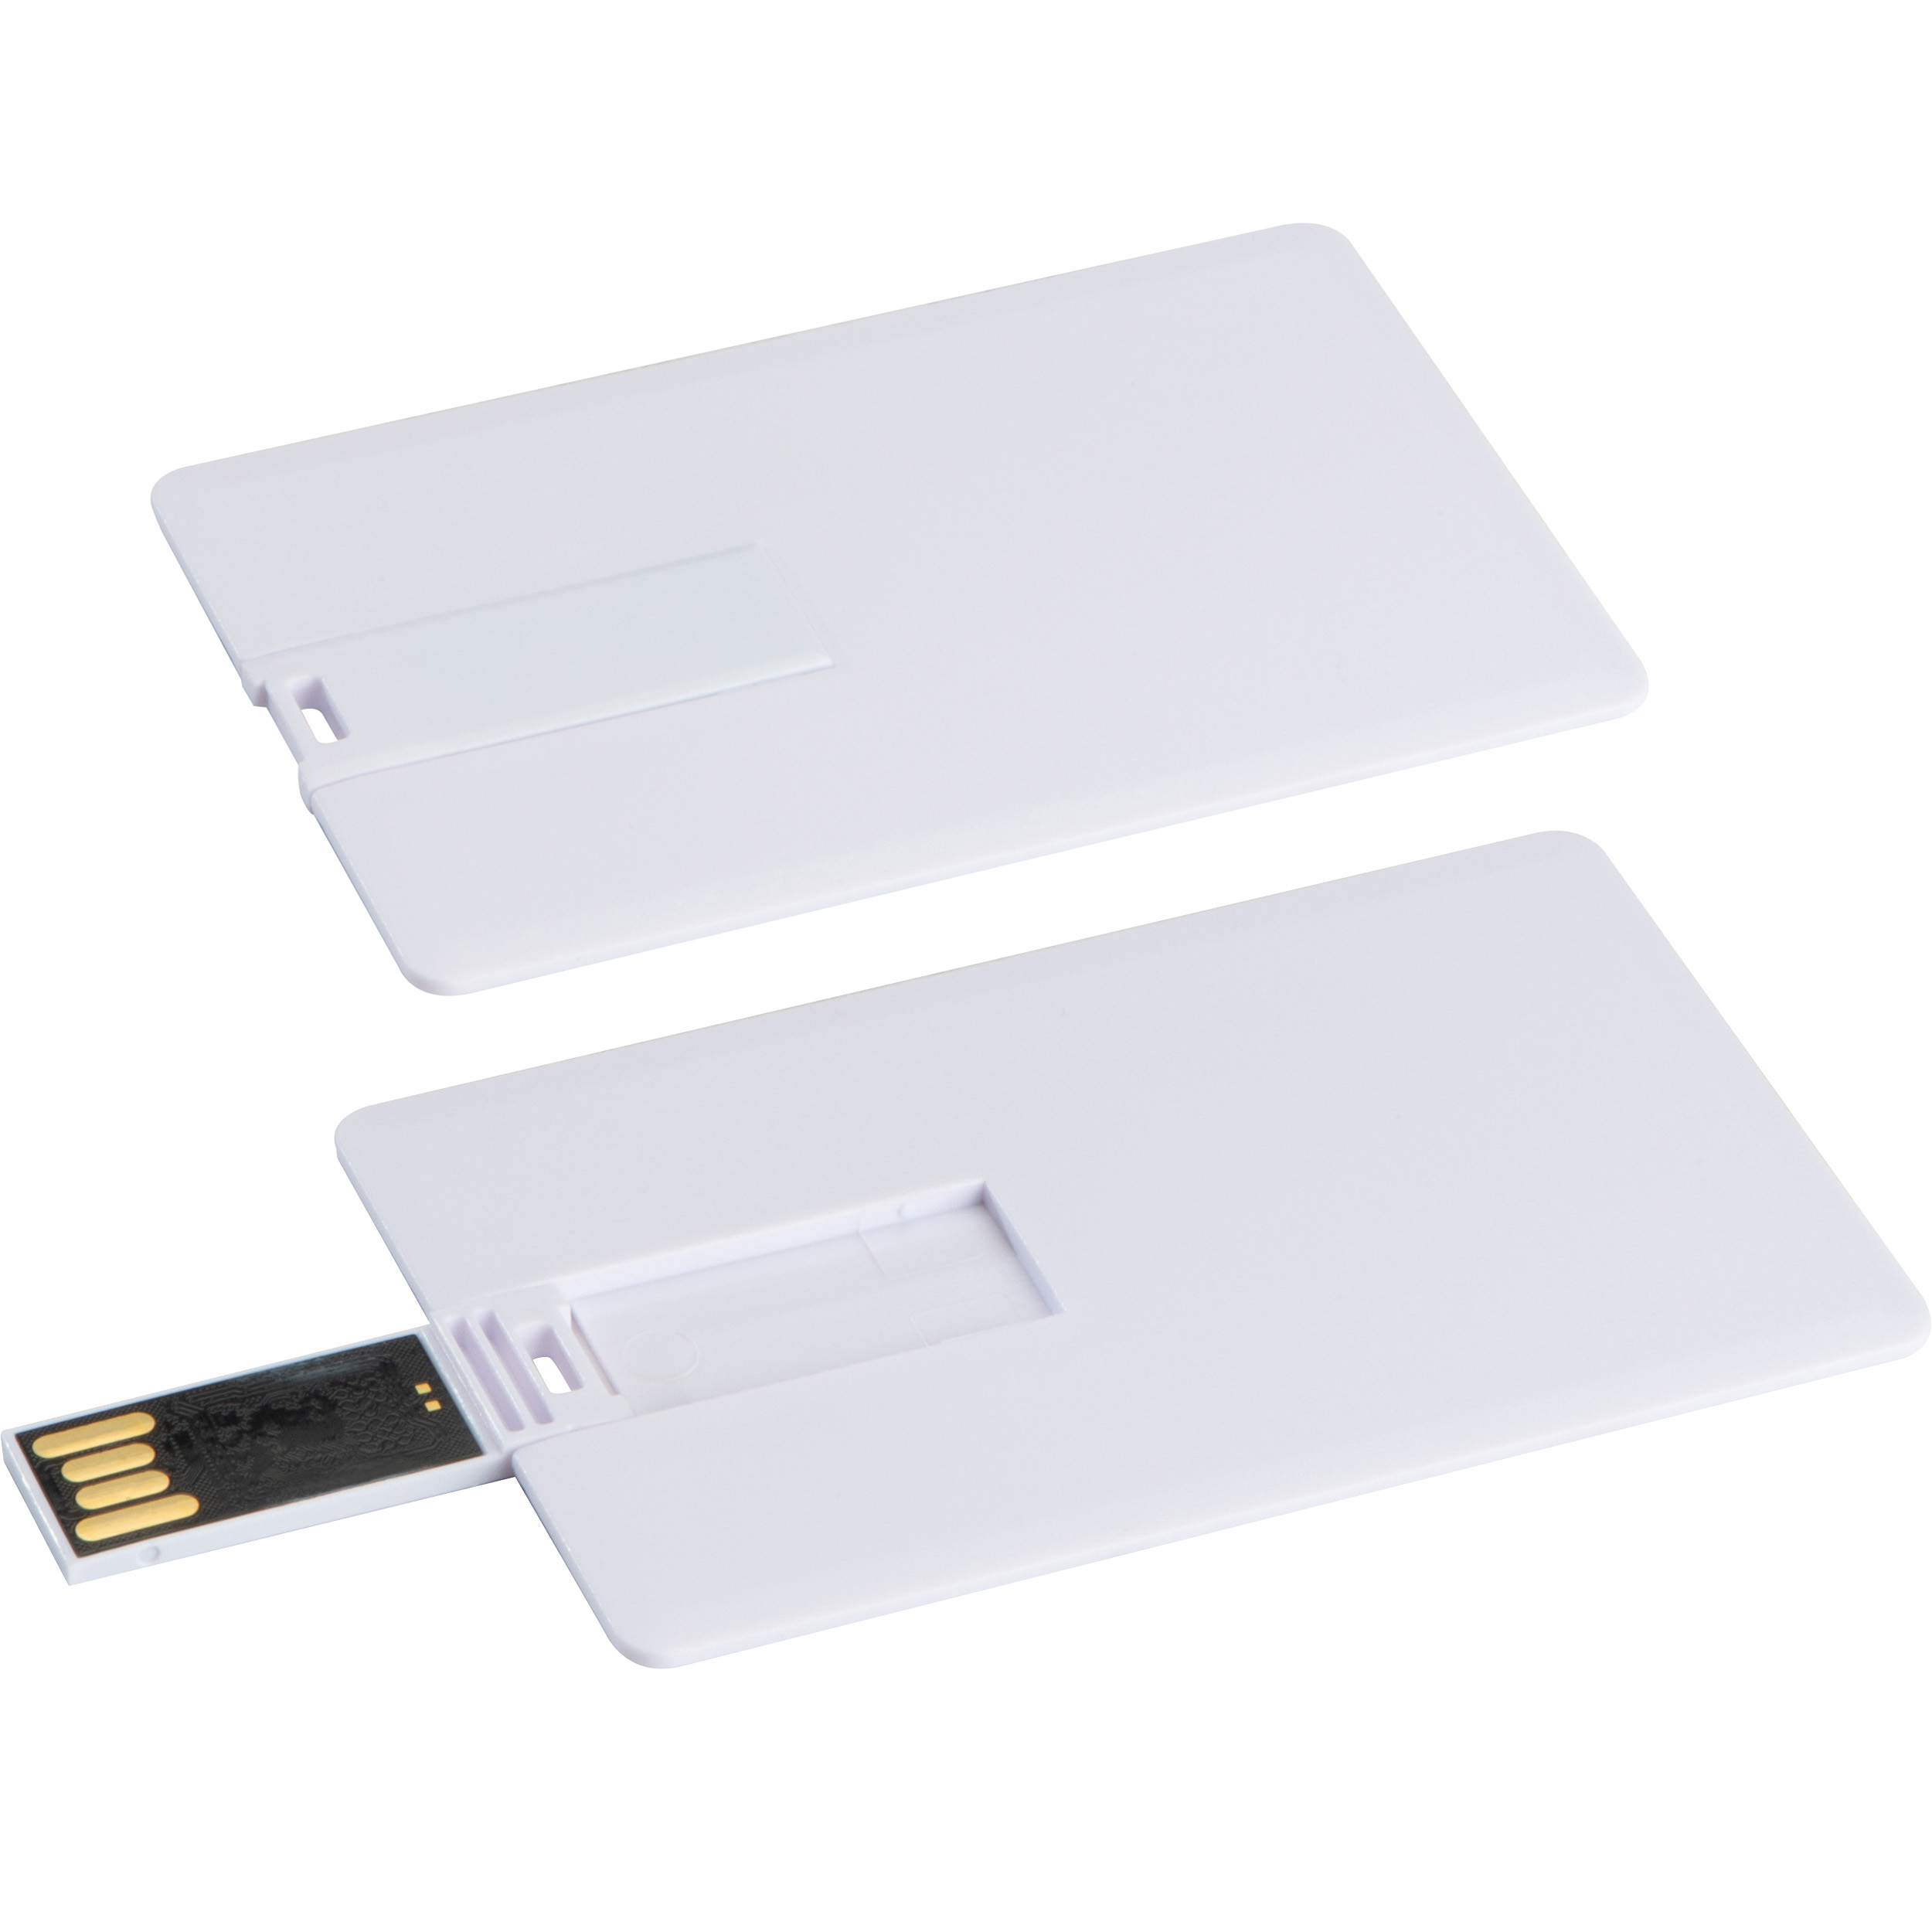 8GB USB Card